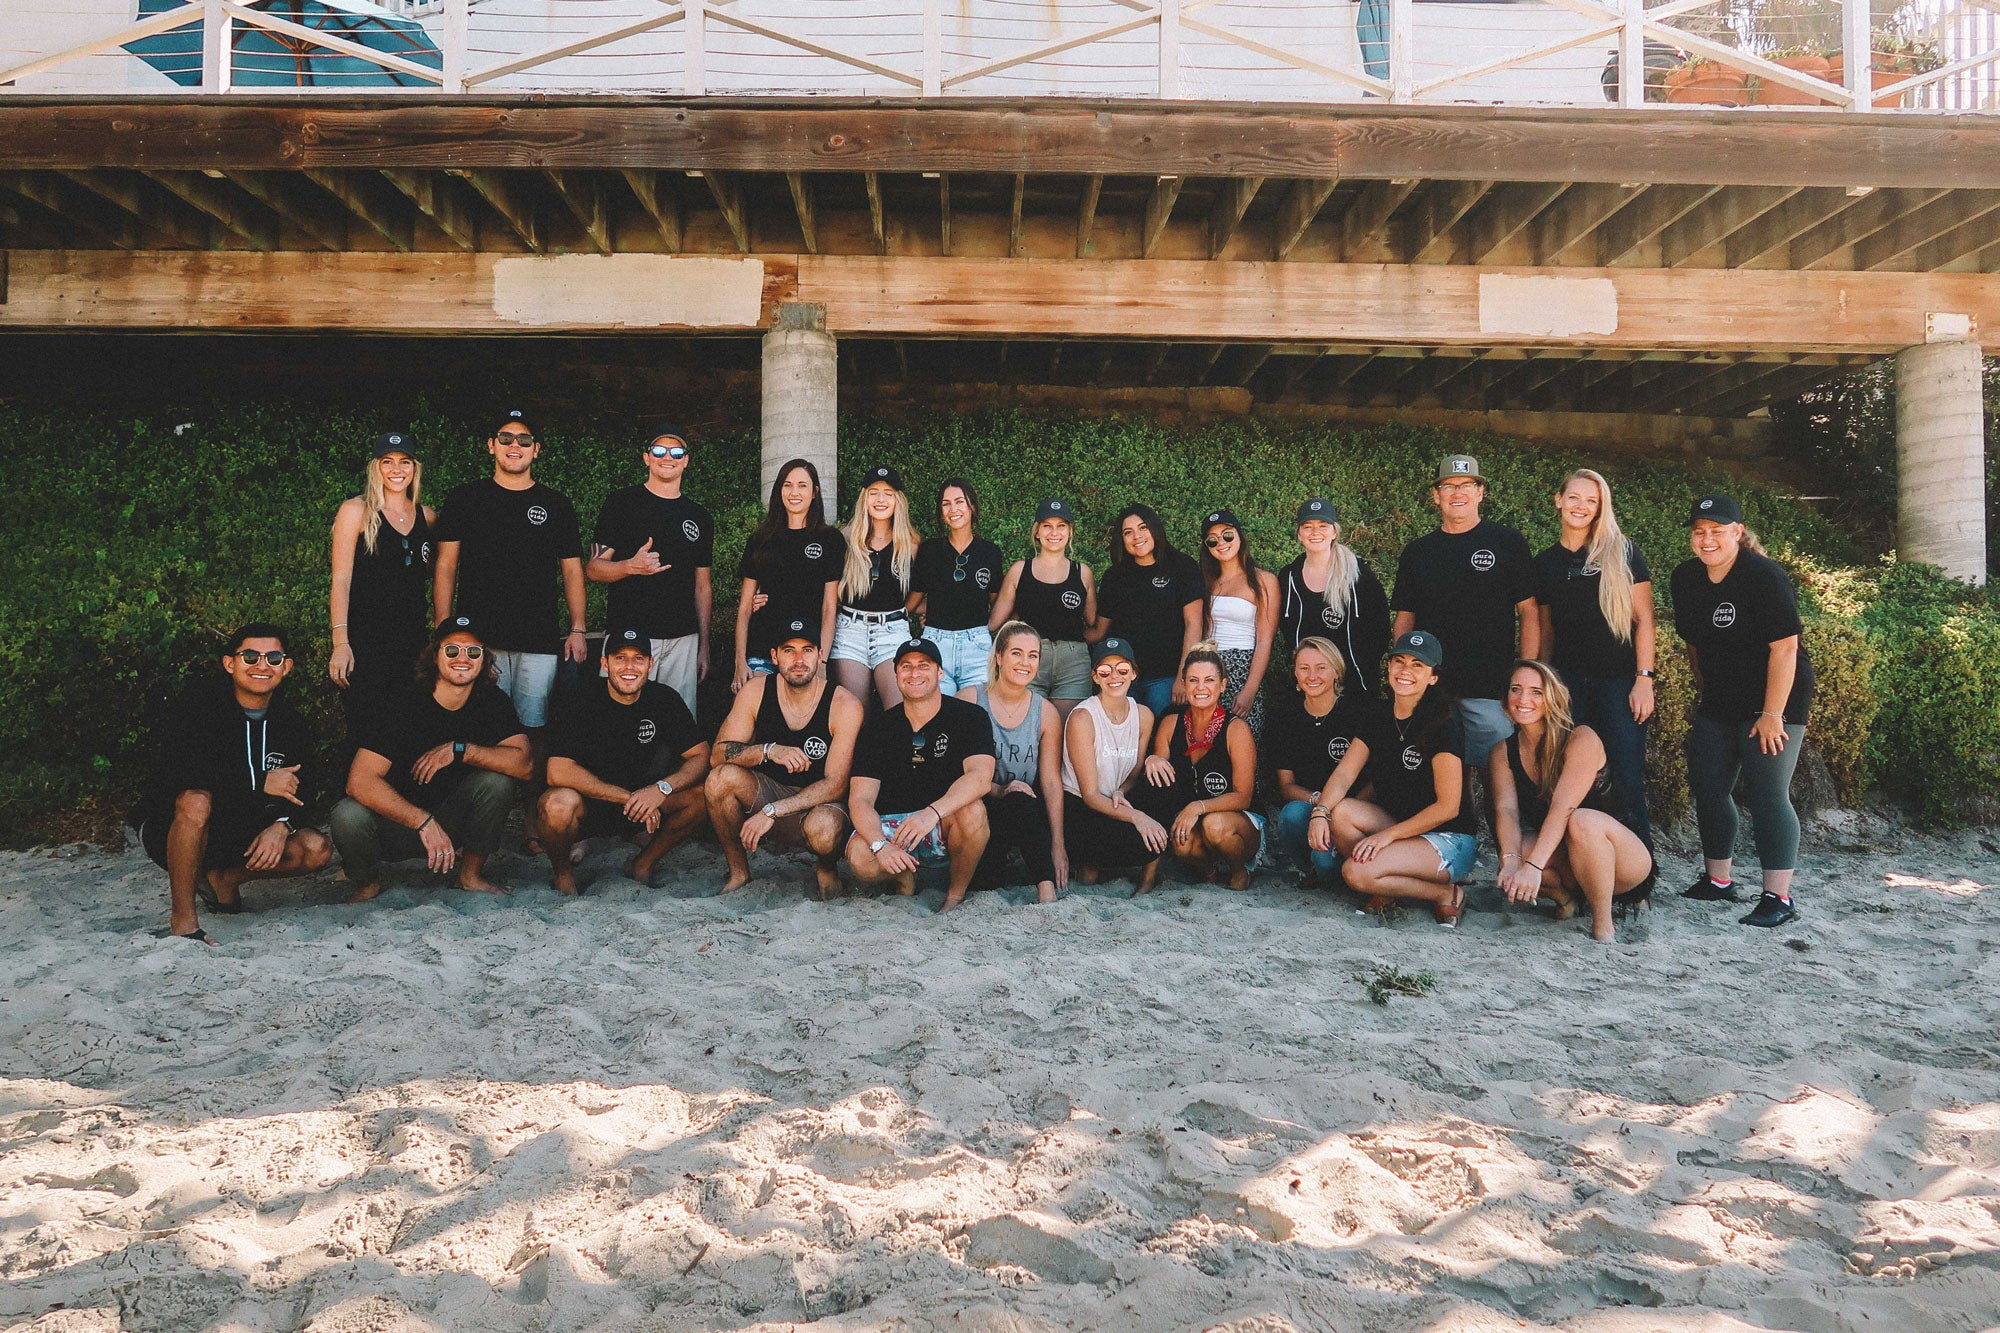 The pura vida team photo